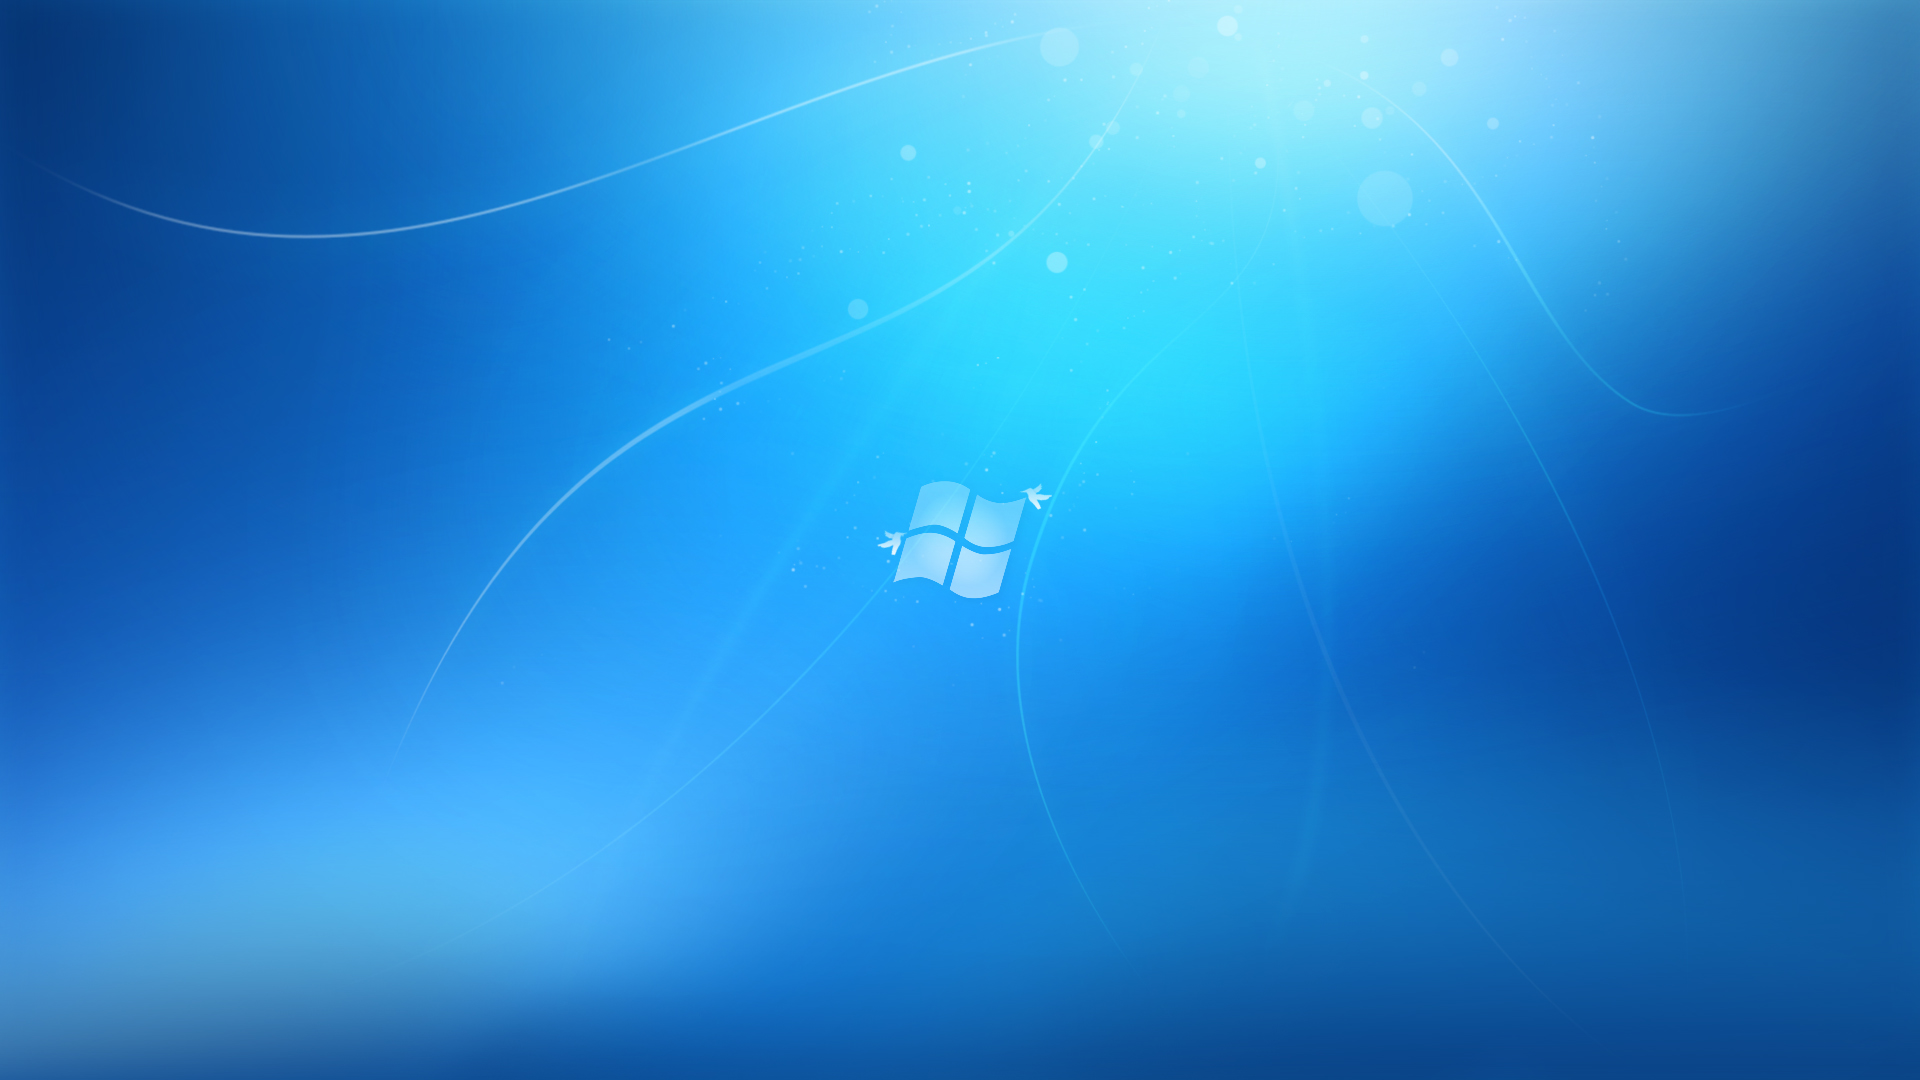 Windows 7 Blue 1080p HD